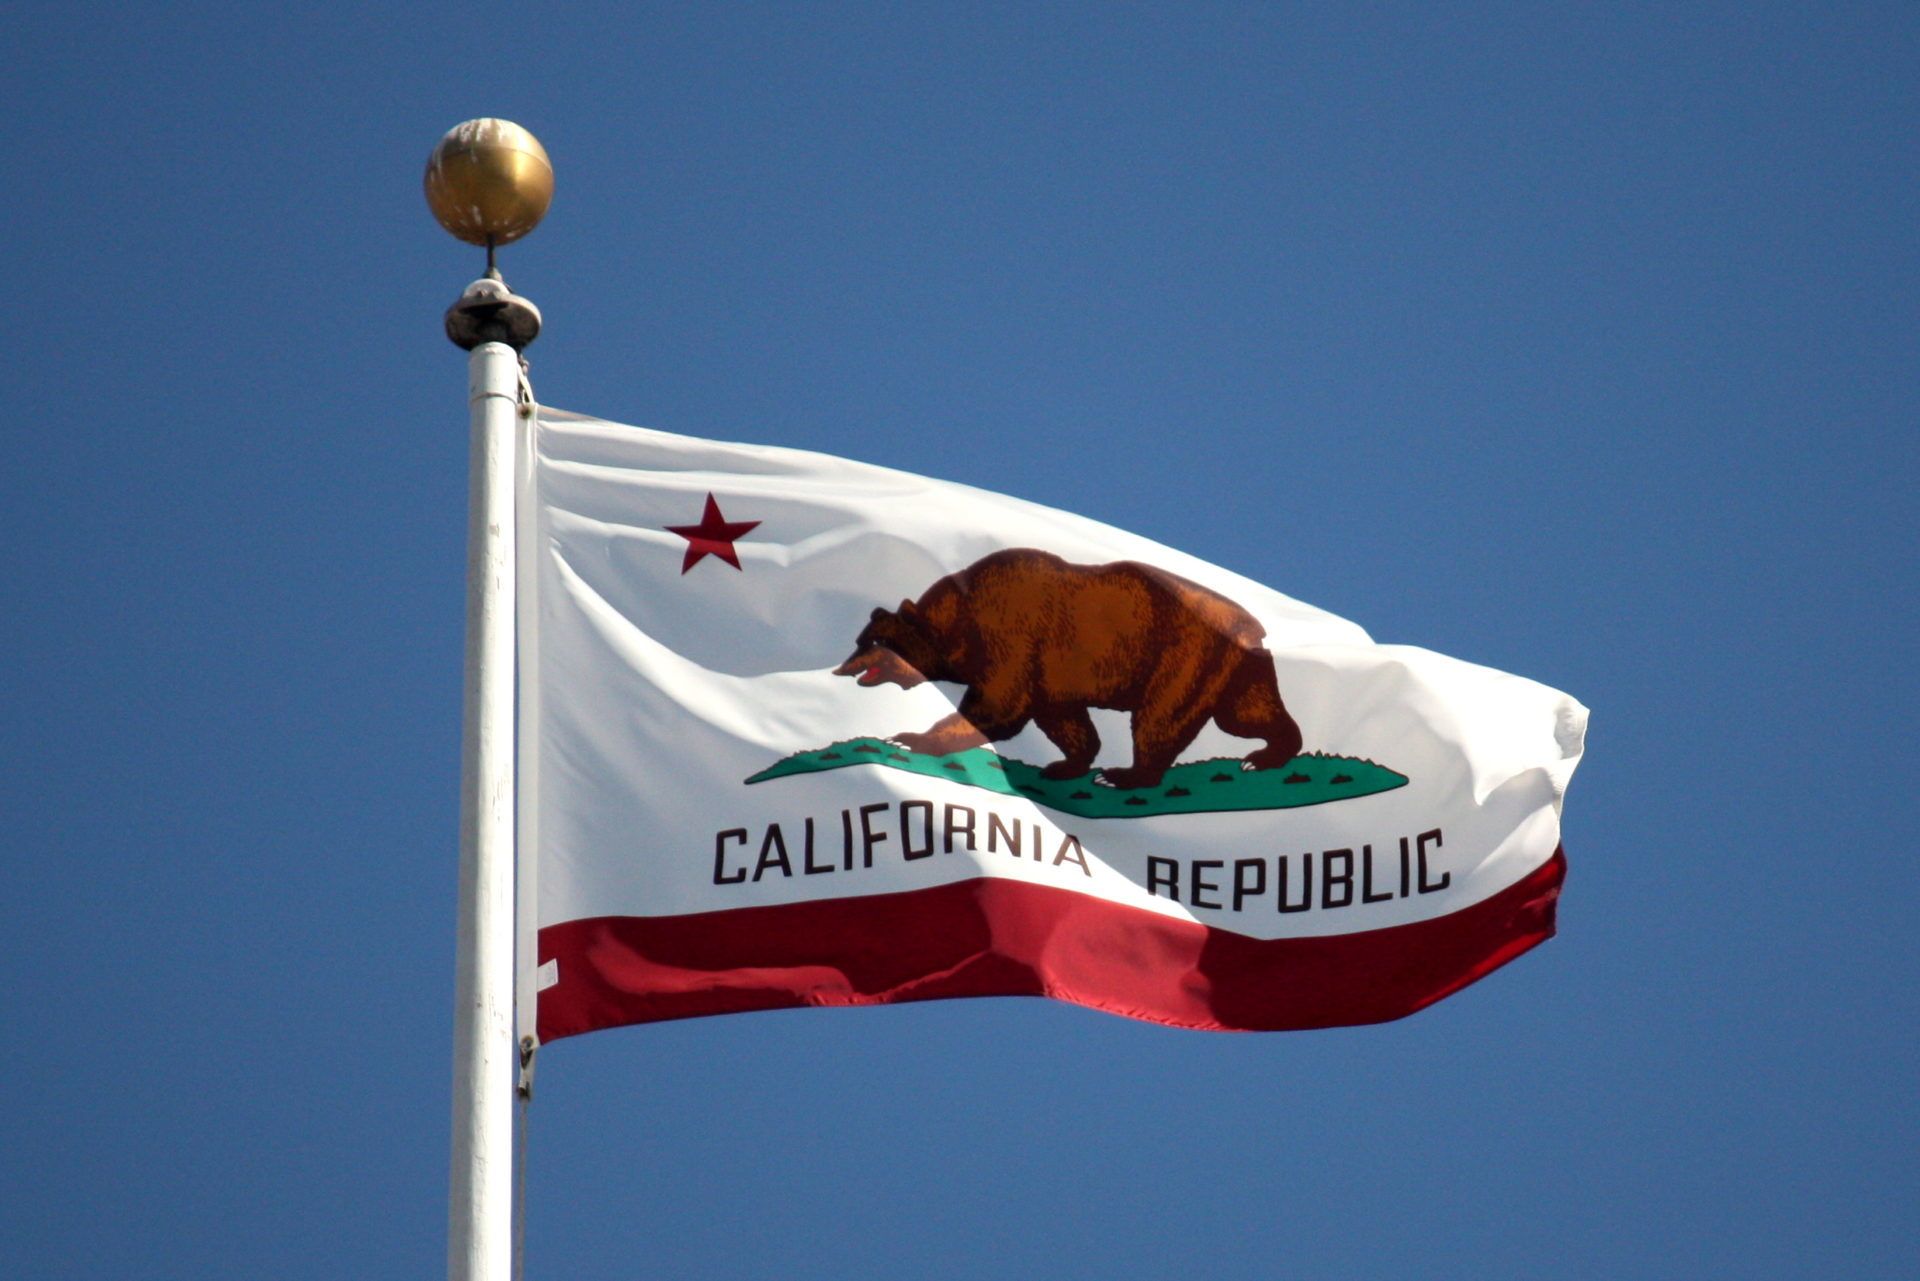 California Legislators Have Been Working to Send Blockchain Legislation For Governor's Approval